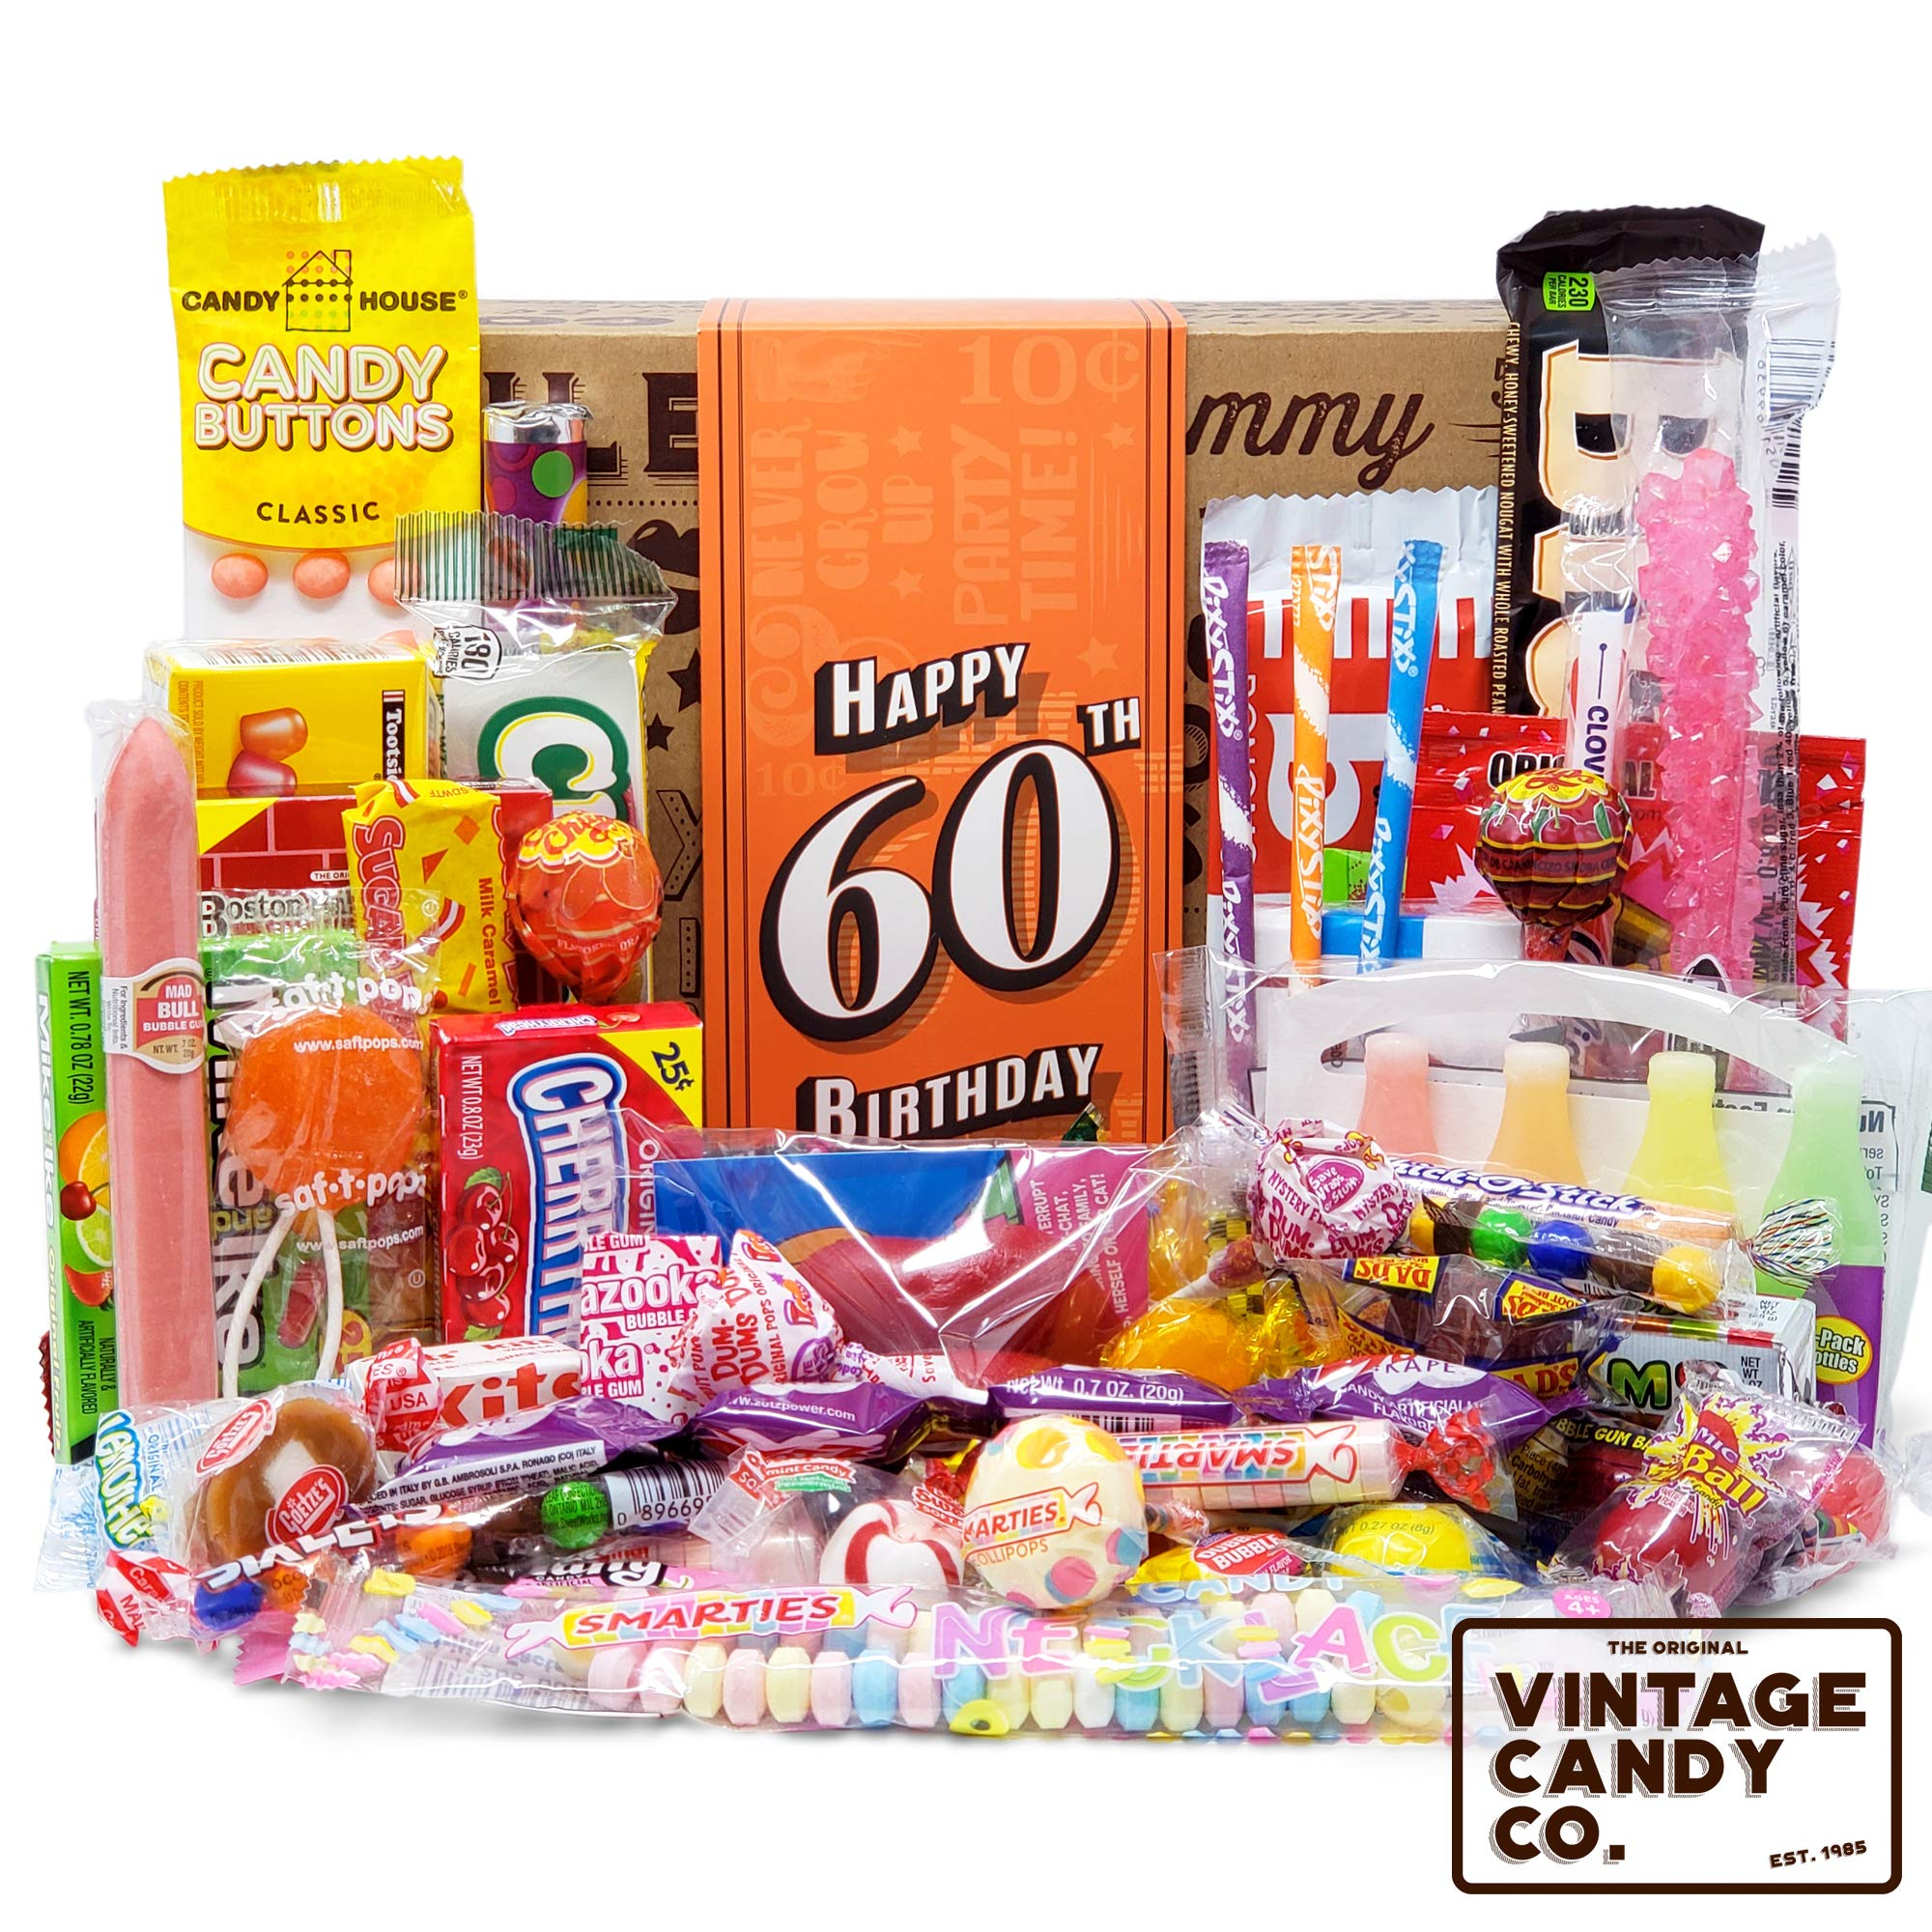 VINTAGE CANDY CO. 60TH BIRTHDAY RETRO CANDY GIFT BOX - 1959 Decade Nostalgic Candies - Fun Gag Gift Basket For Milestone SIXTIETH Birthday - PERFECT For Man Or Woman Turning 60 Years Old by Vintage Candy Co.